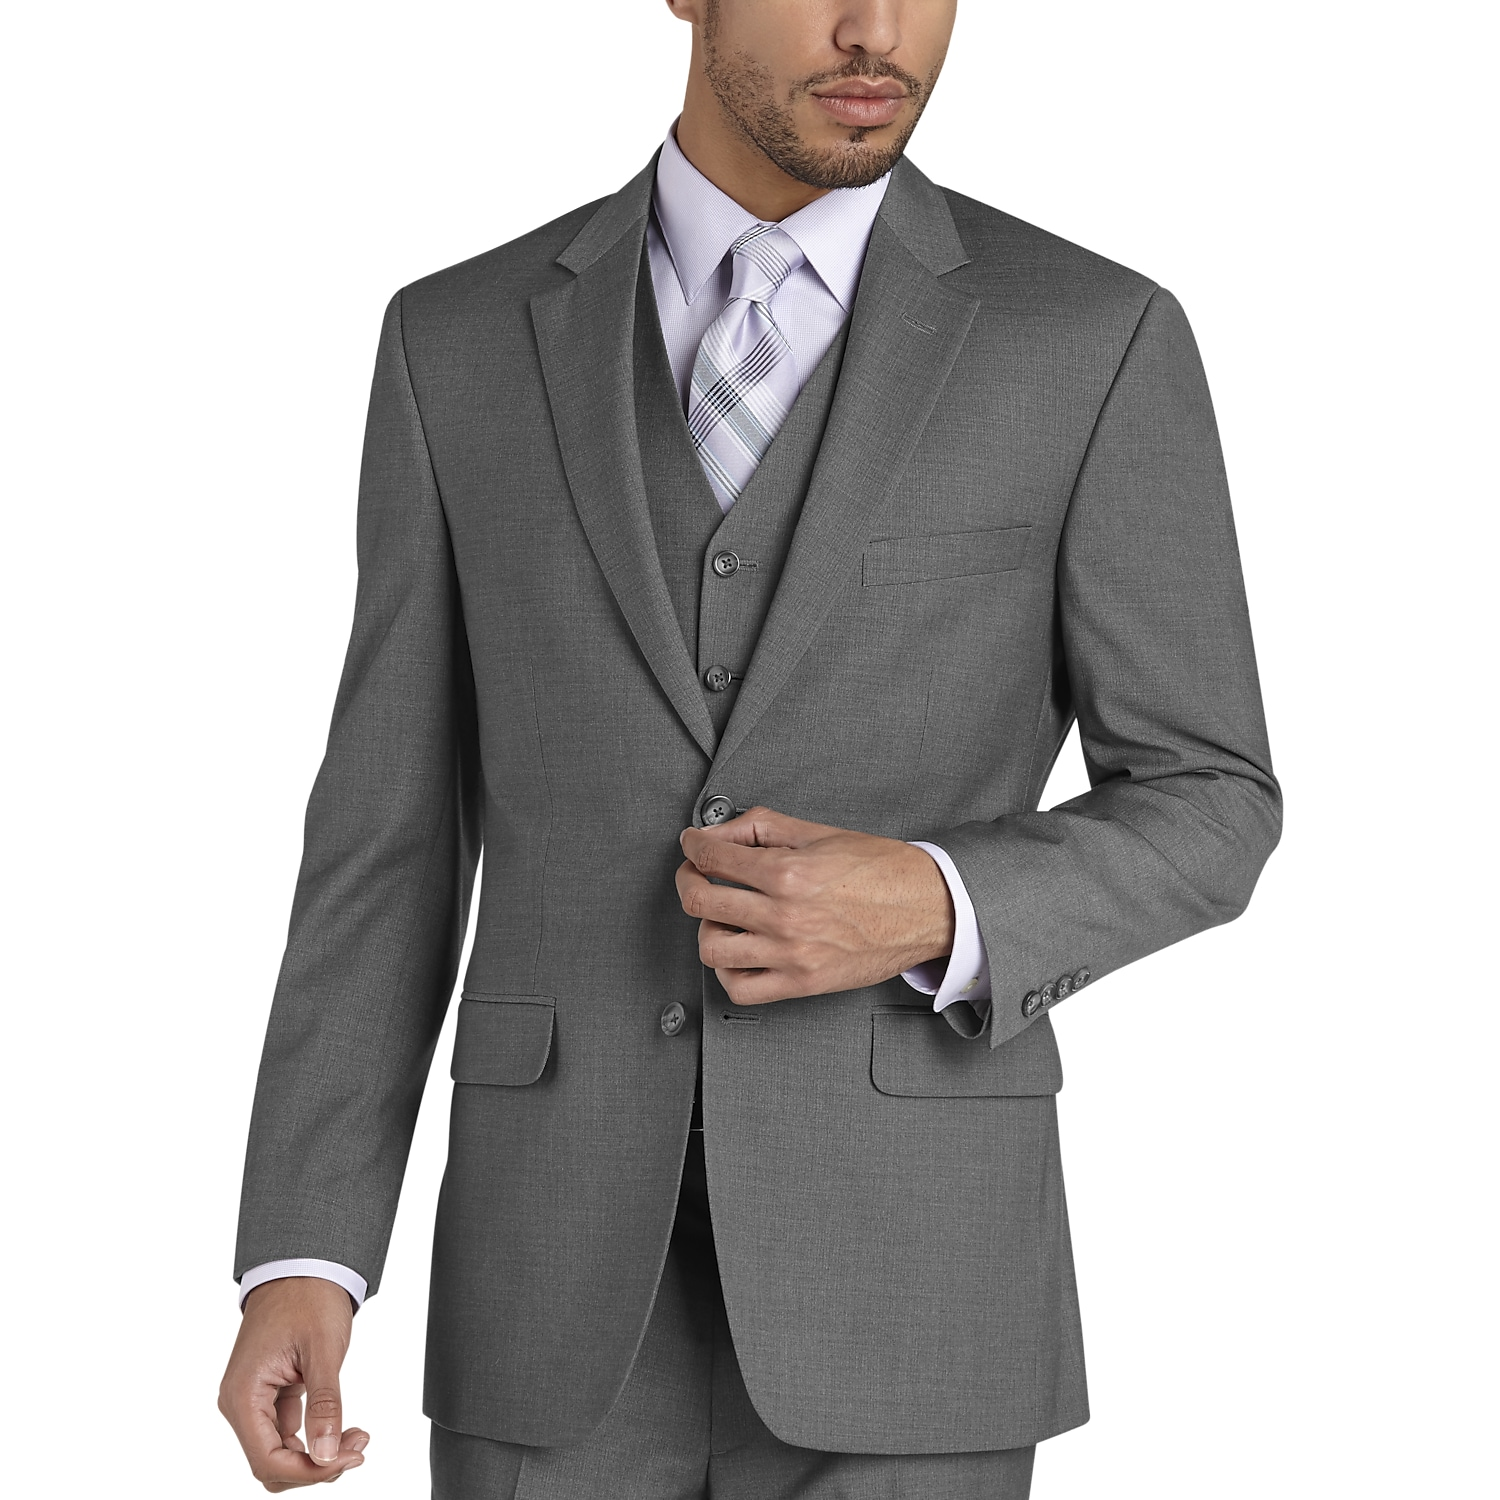 7151bba6357 Mens Home - Pronto Uomo Gray Modern Fit Vested Suit - Men s Wearhouse